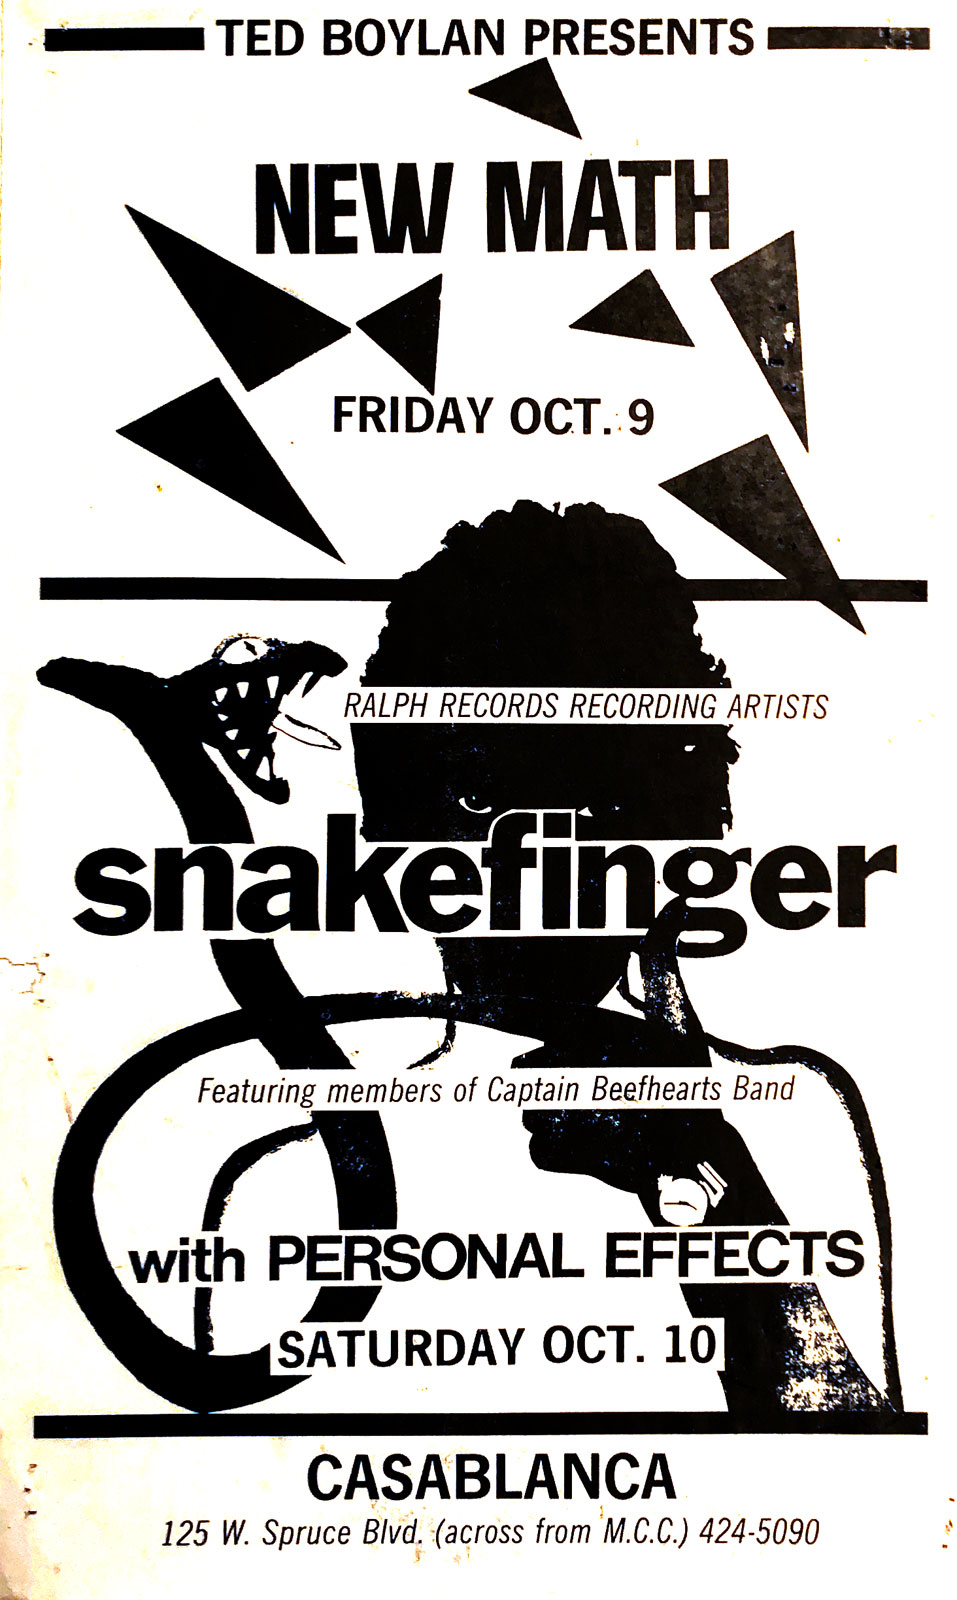 Poster for Snakefinger with Personal Effects at Casablanca in Rochester, New York on 10.12.1985. A Ted Boylan Production. New Math played the same club the night before.